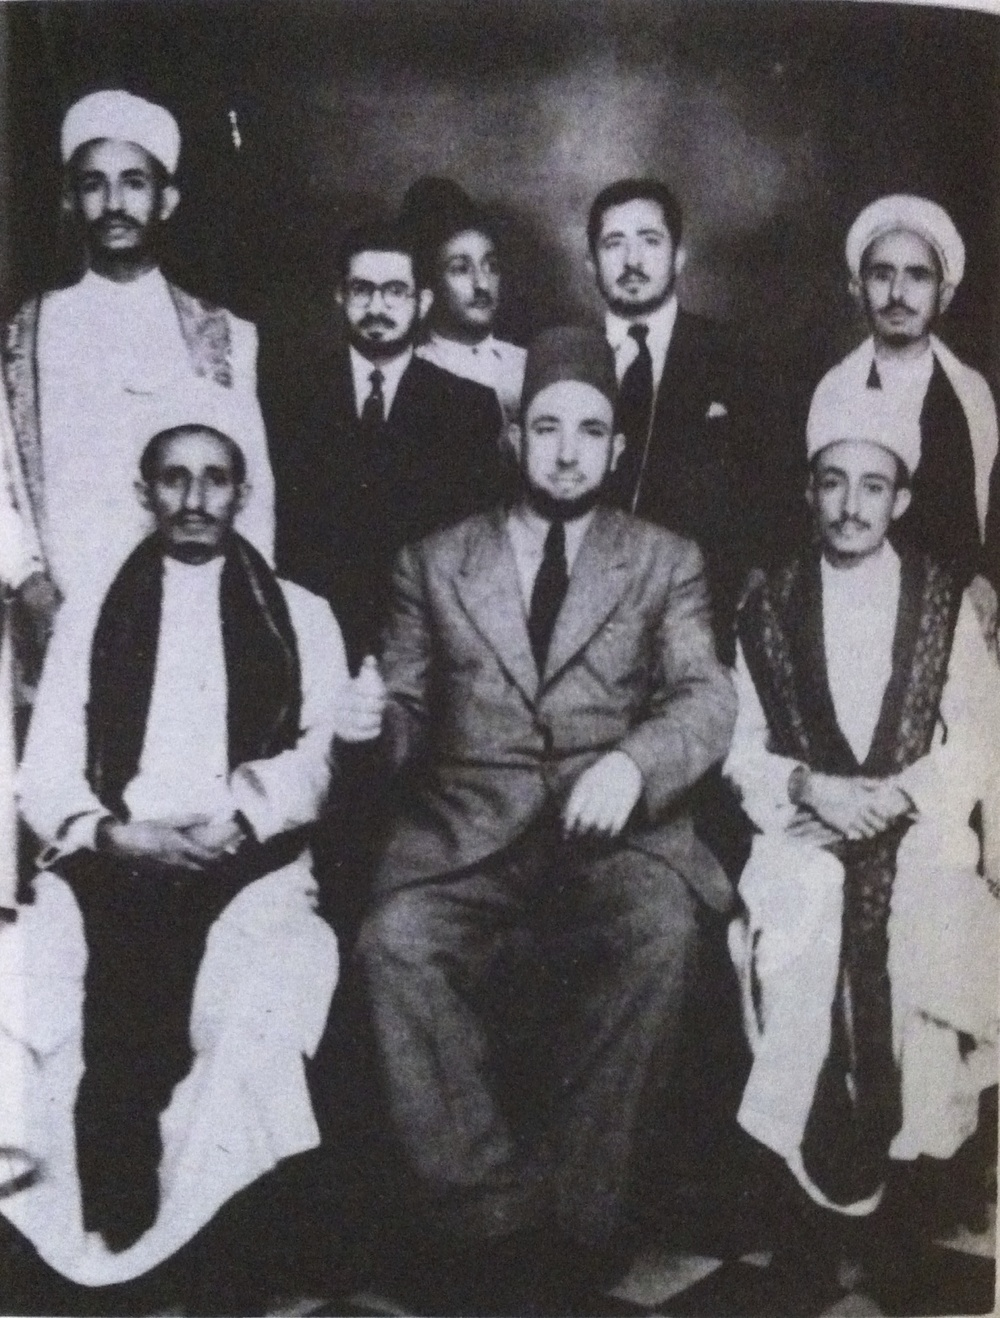 Front row from the right: Hussein Ben Ali Al-Waisi, Al Fadheel Al Wartlani and Abdullah Al Iryani  Back row from left: Mohammed Al Emad, Mohiye AlDin Al 'Ansi, Ahmed Al Horesh, and Zayed Al Al-Moushki  Last row: Ahmed Abdo Nasher *